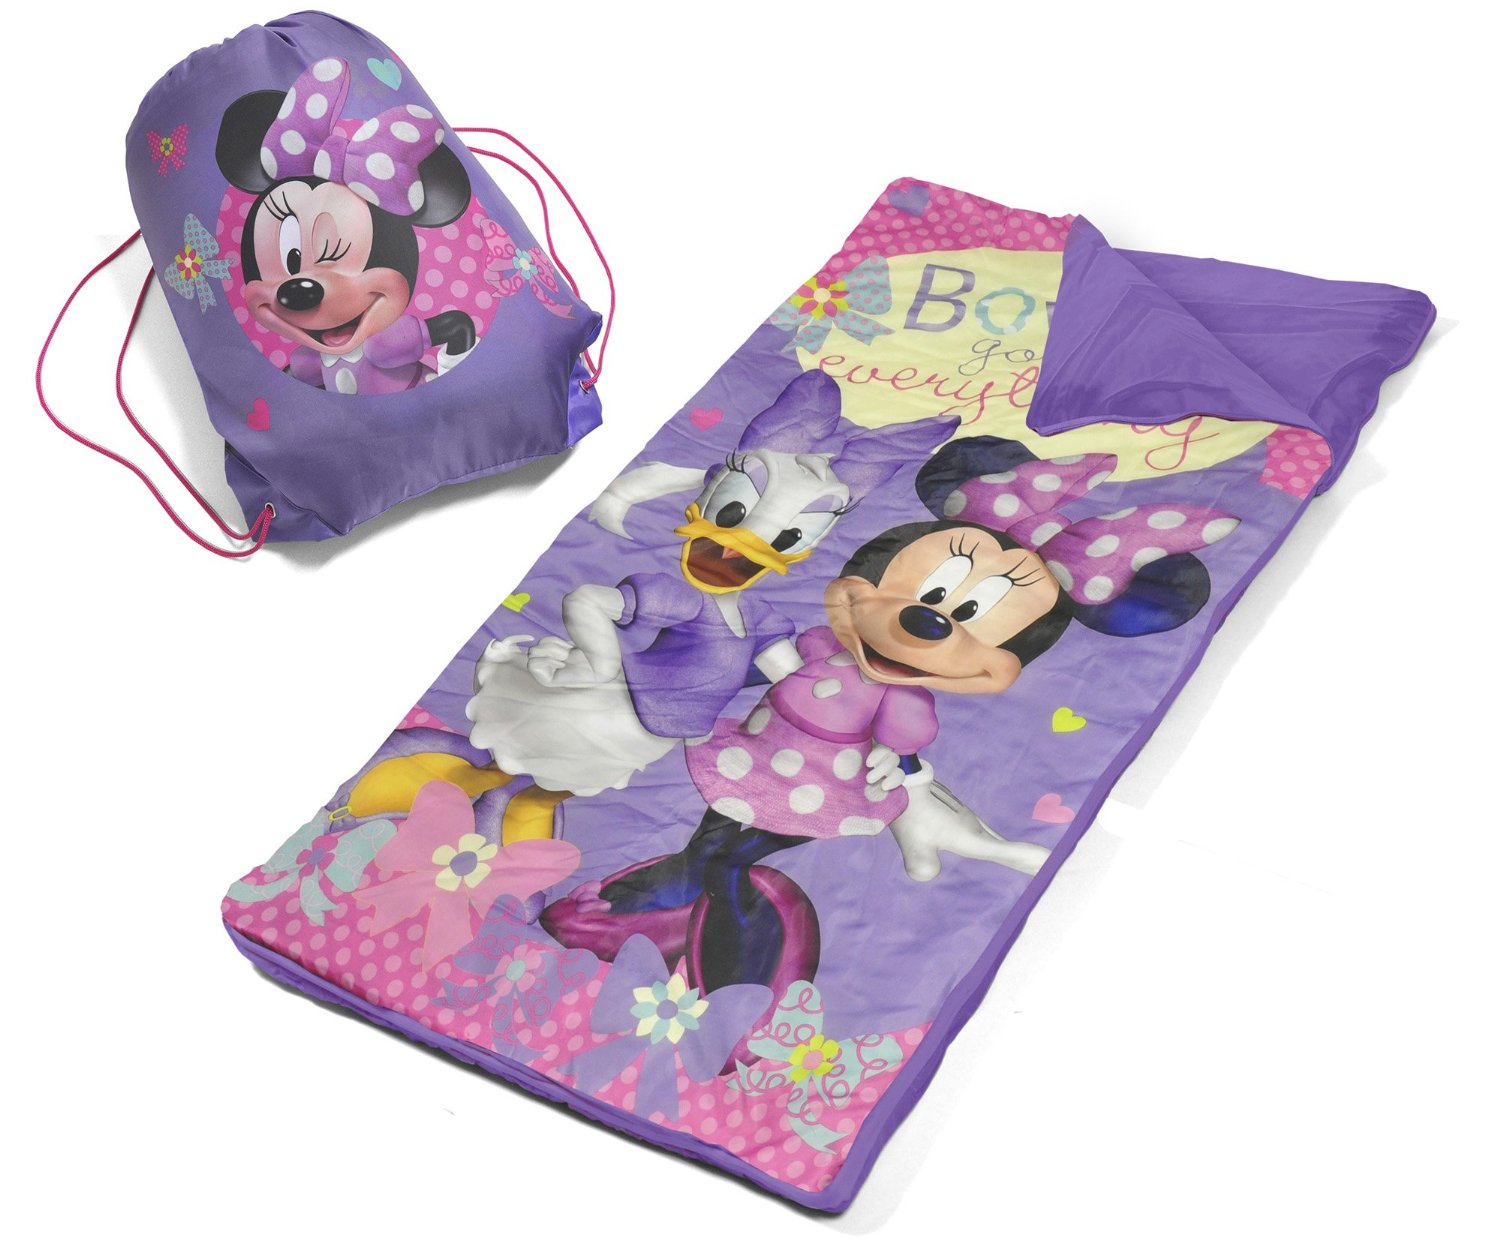 Disney Minnie Mouse Slumber Bag Set Only 9 98 Lowest Price